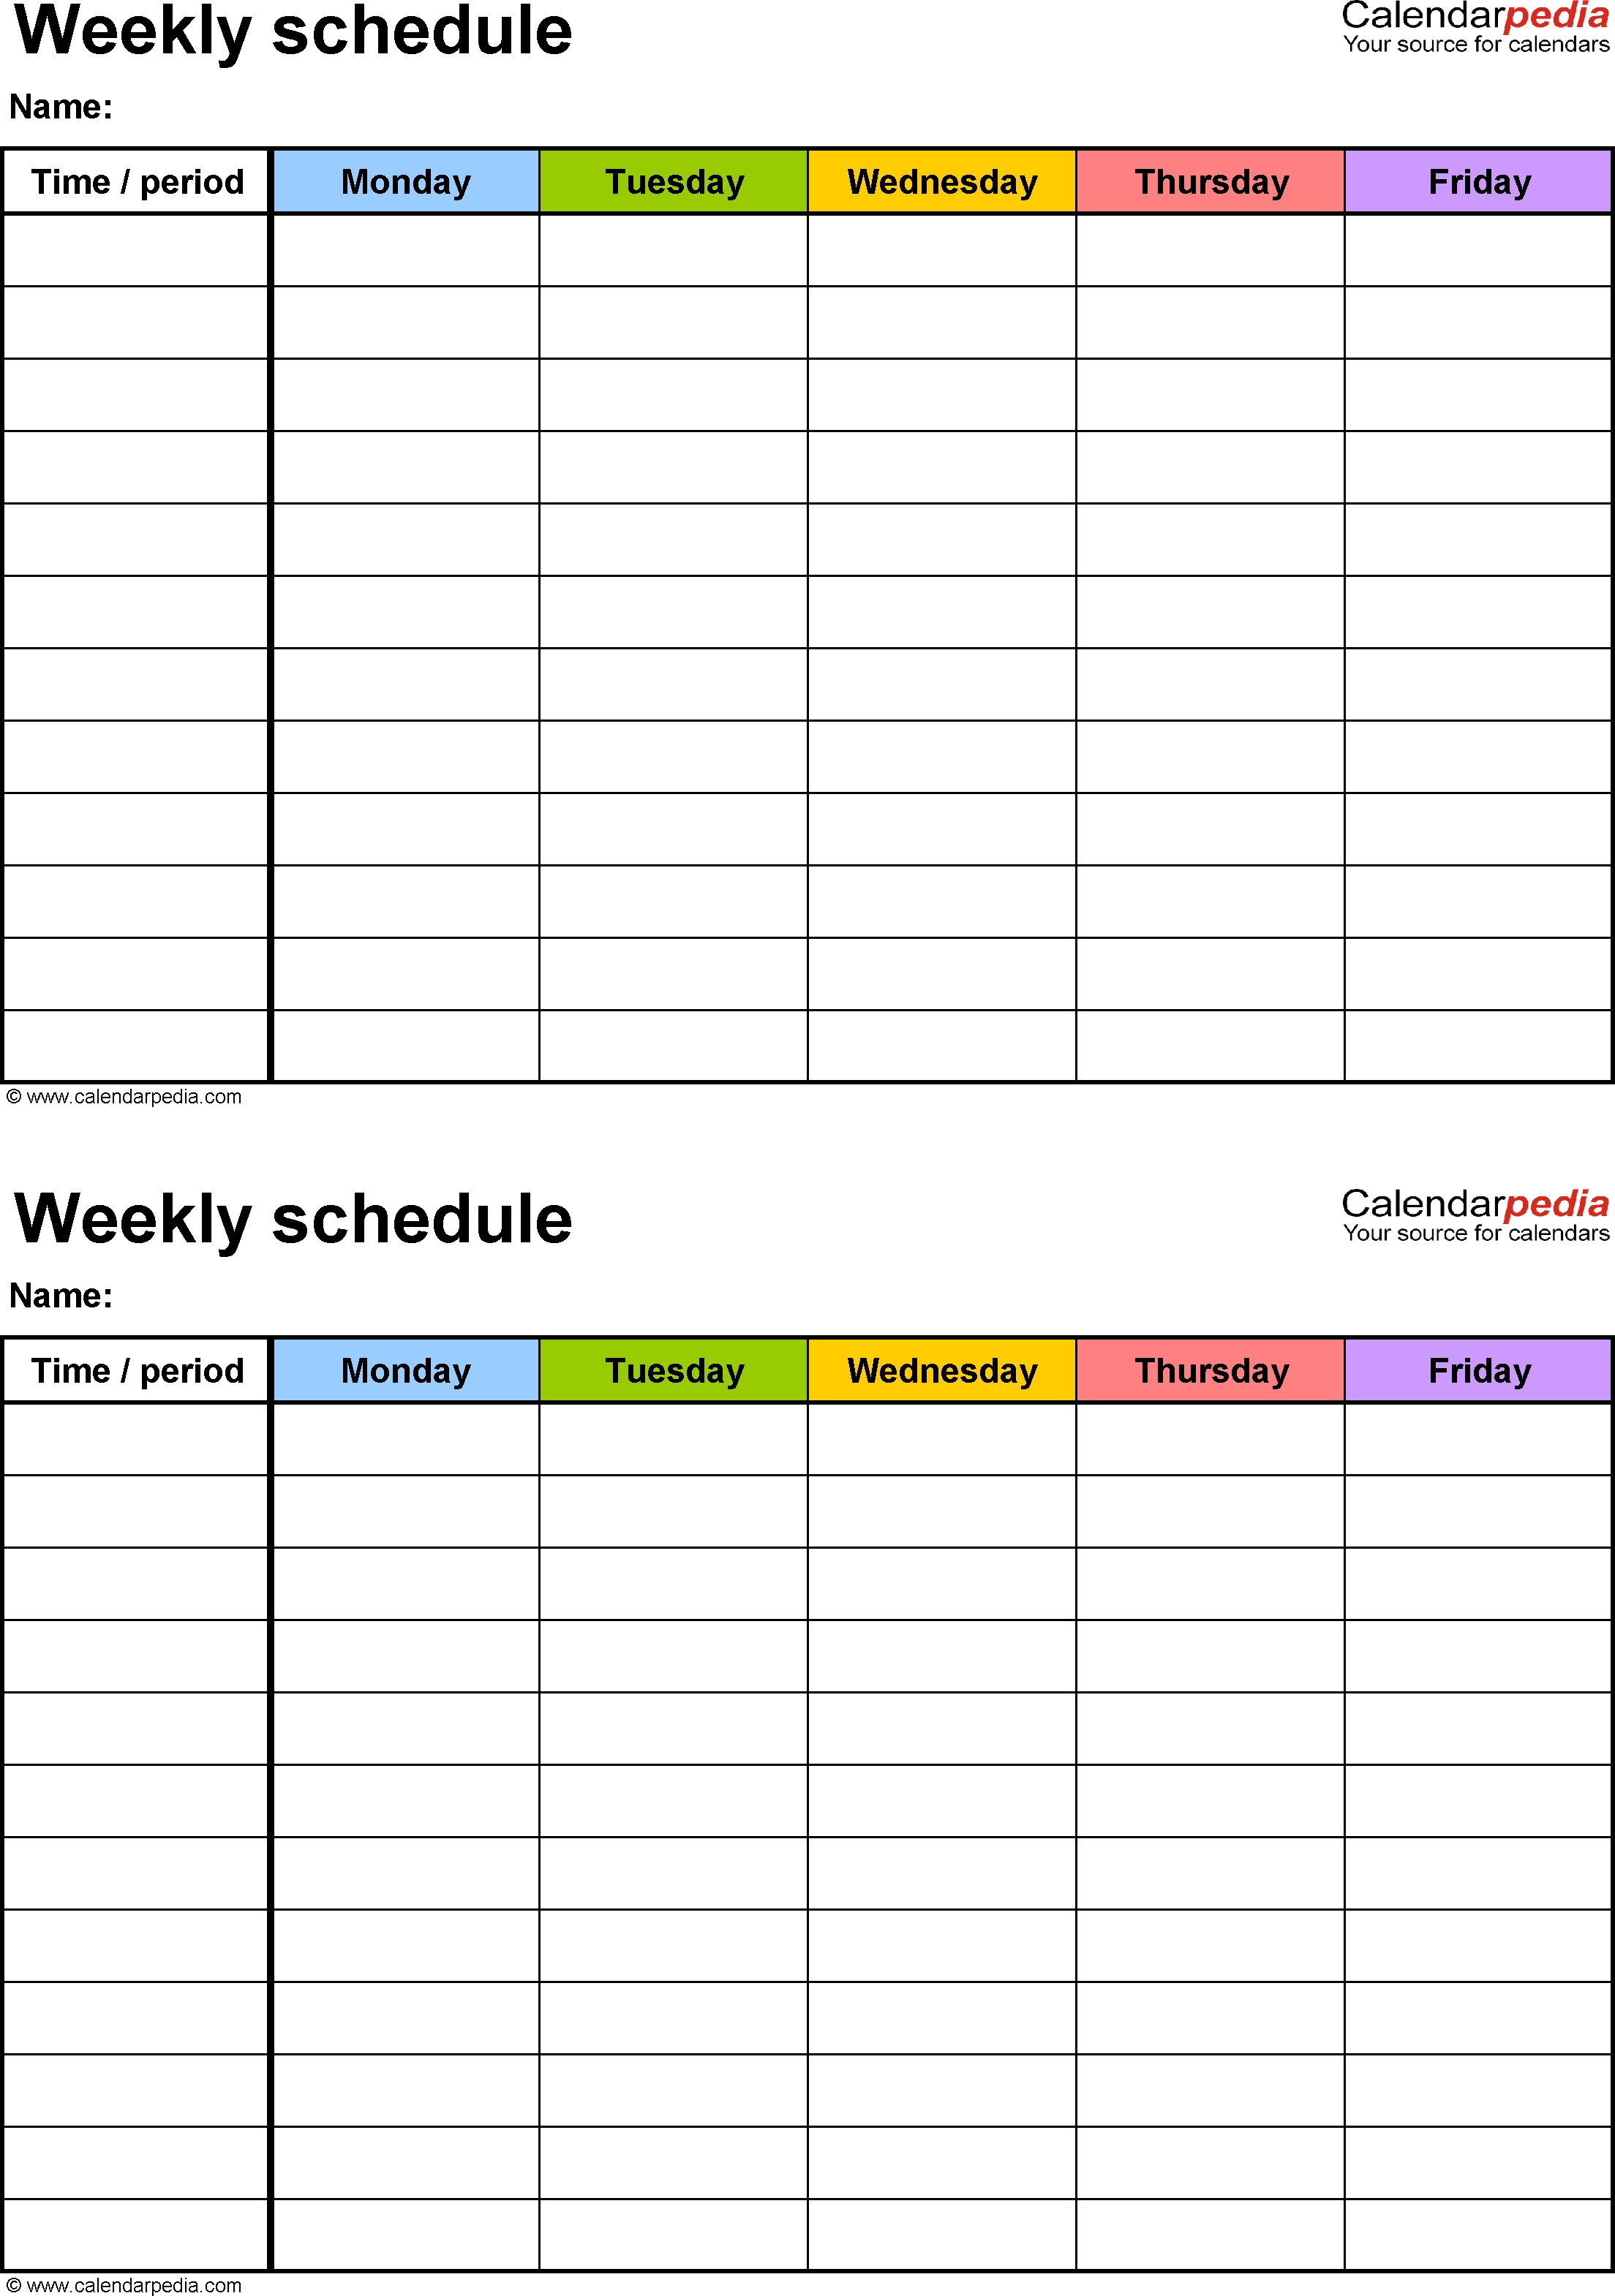 Free Weekly Schedule Templates For Word - 18 Templates with regard to Monday Through Friday Activity Schedule